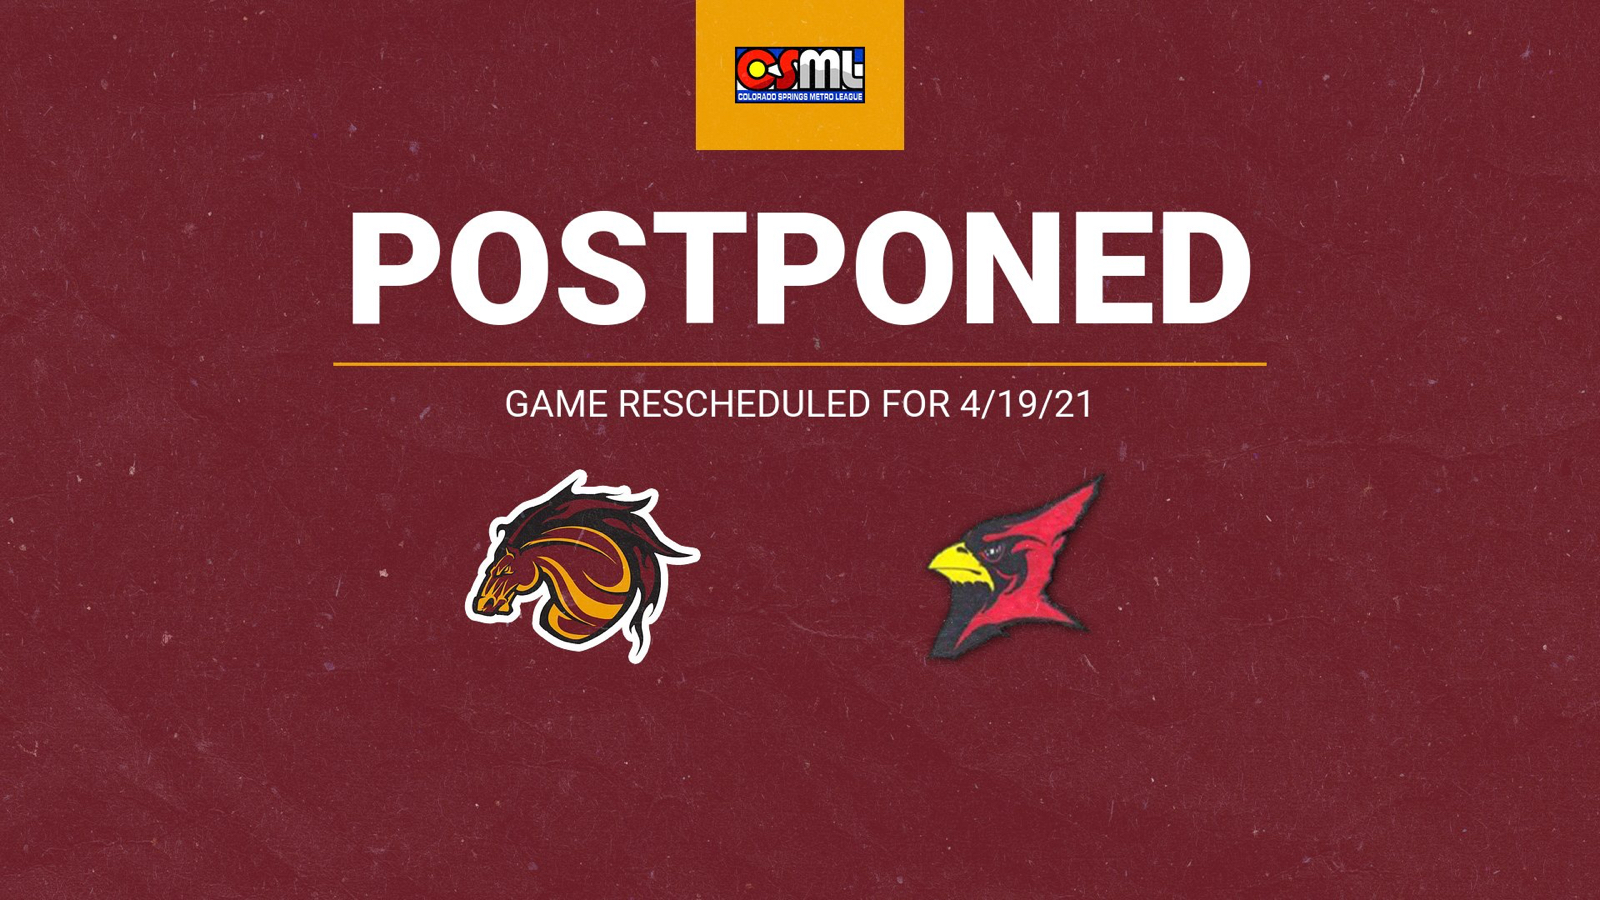 Boys Soccer vs. Elizabeth Postponed Due to Weather/Field Conditions